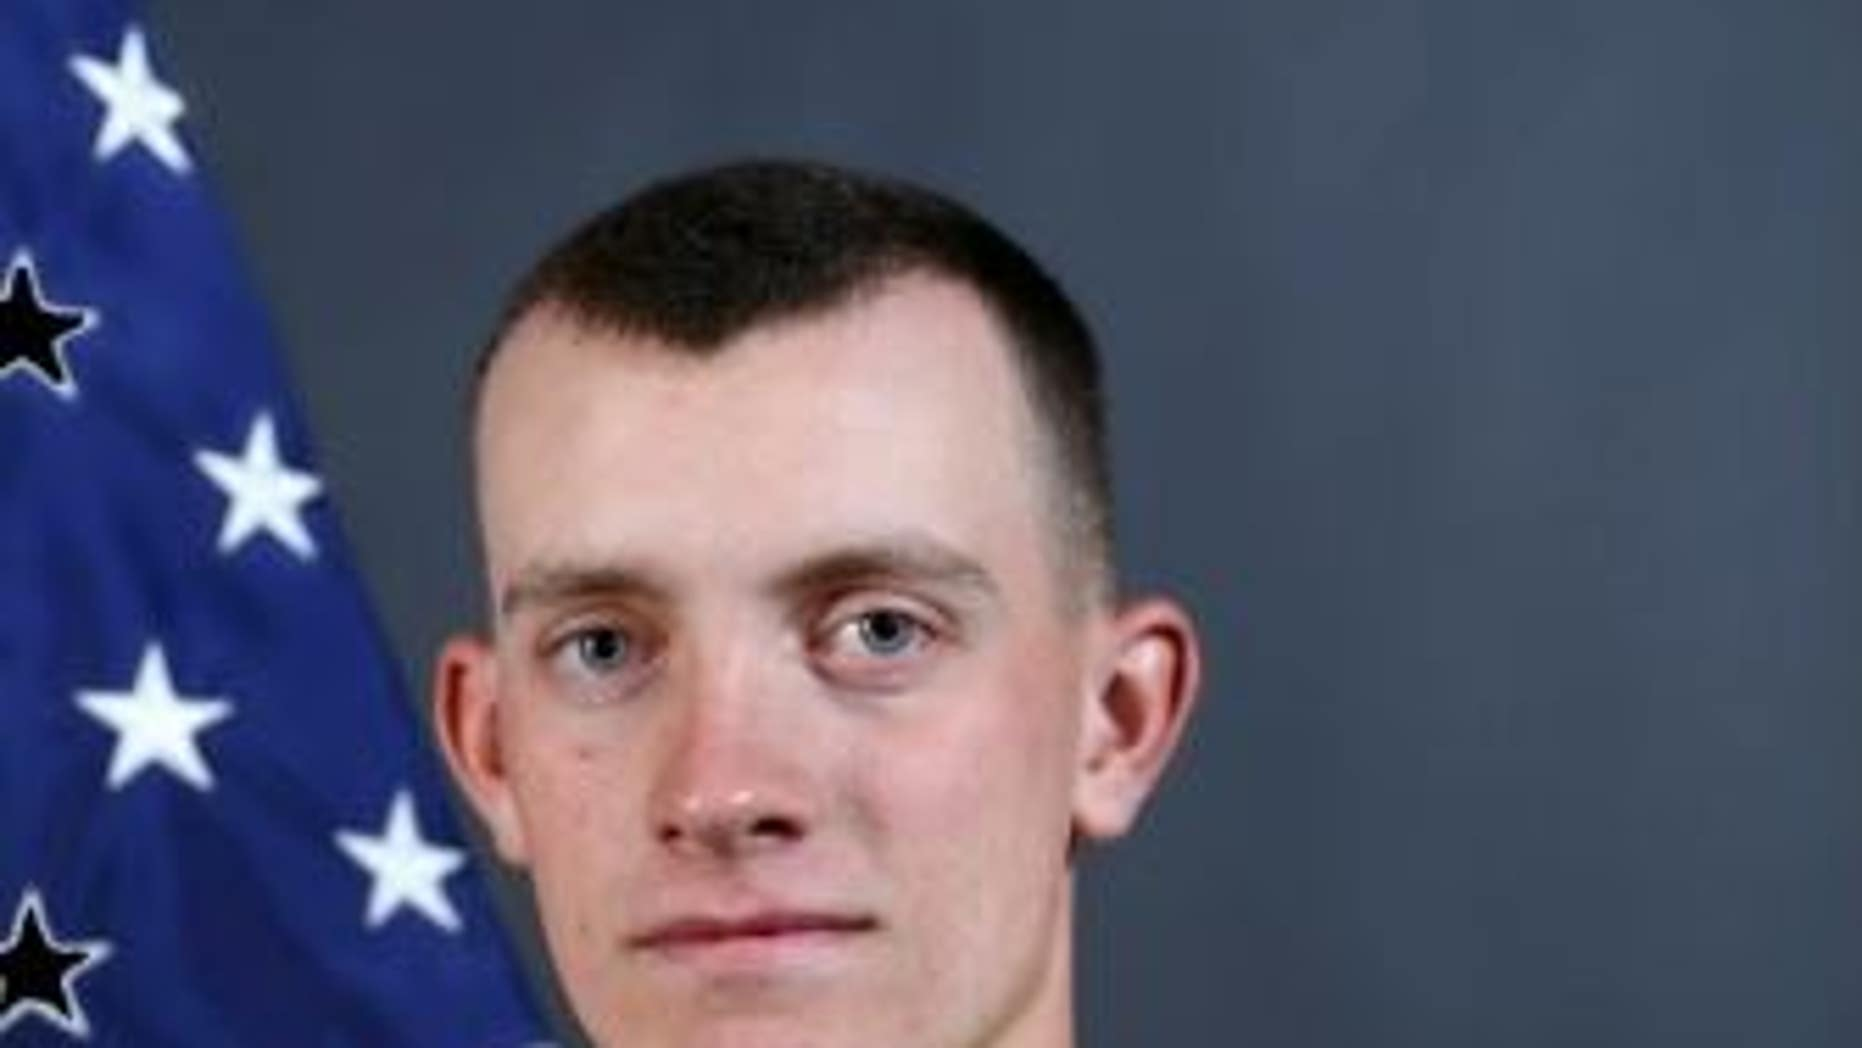 Pfc. Matthew Cox, 19, died Tuesday when strong currents overpowered him while he was swimming at a beach, officials said.